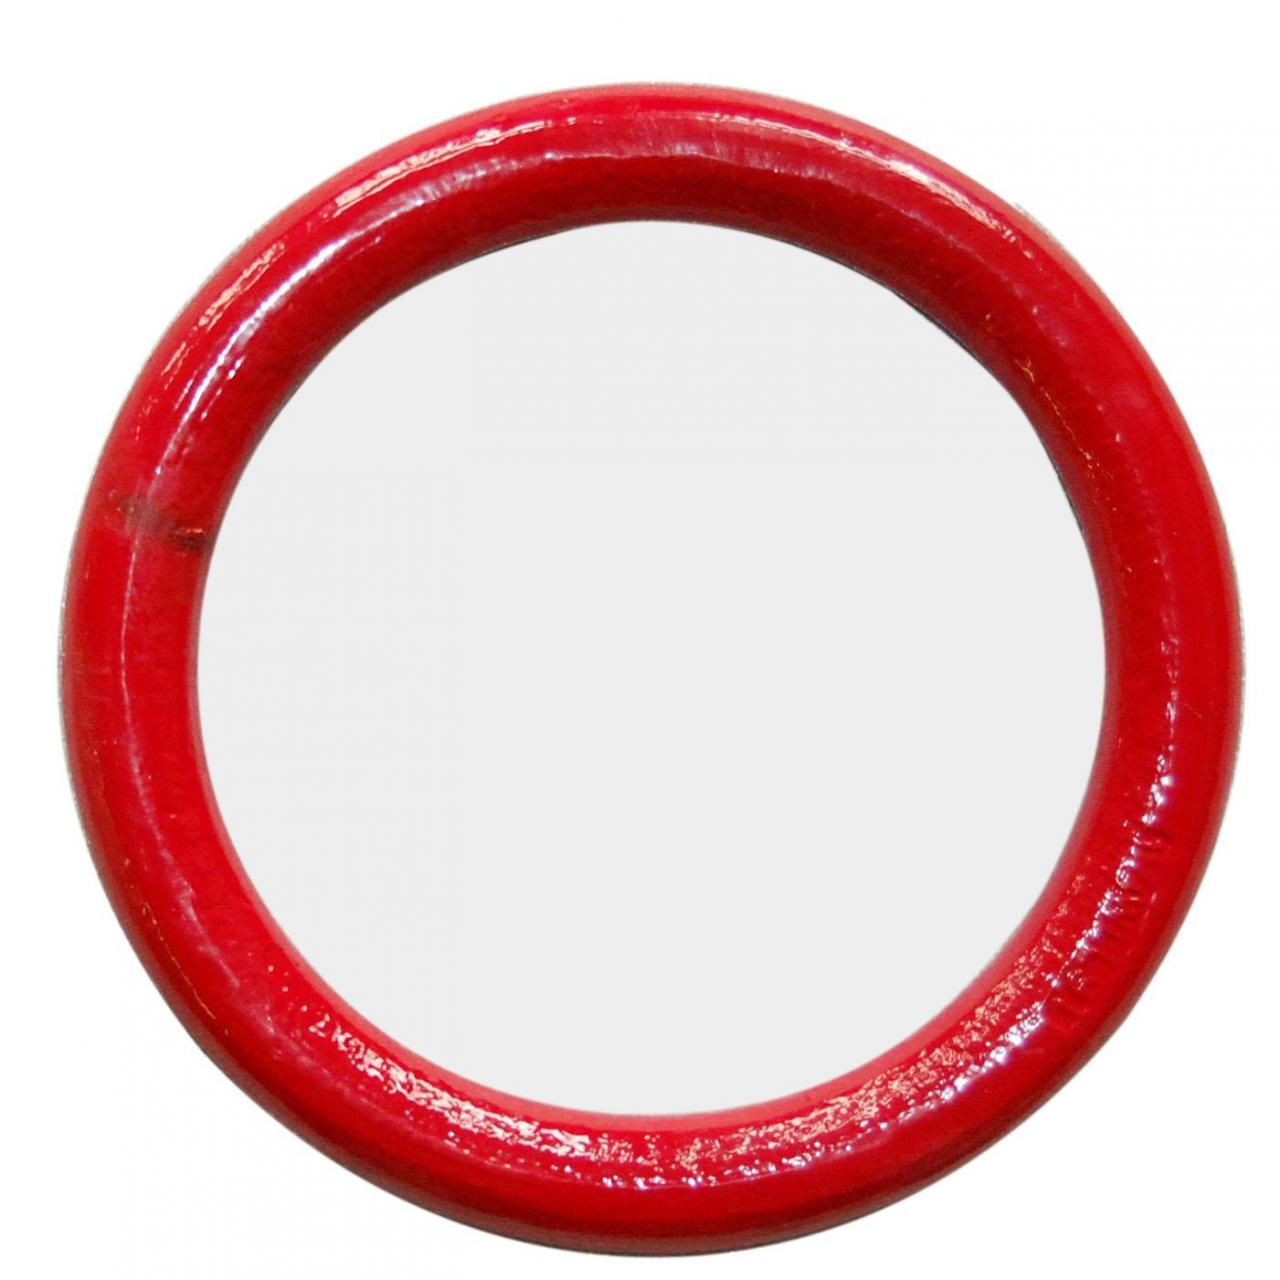 Buy cheap RING LINK product